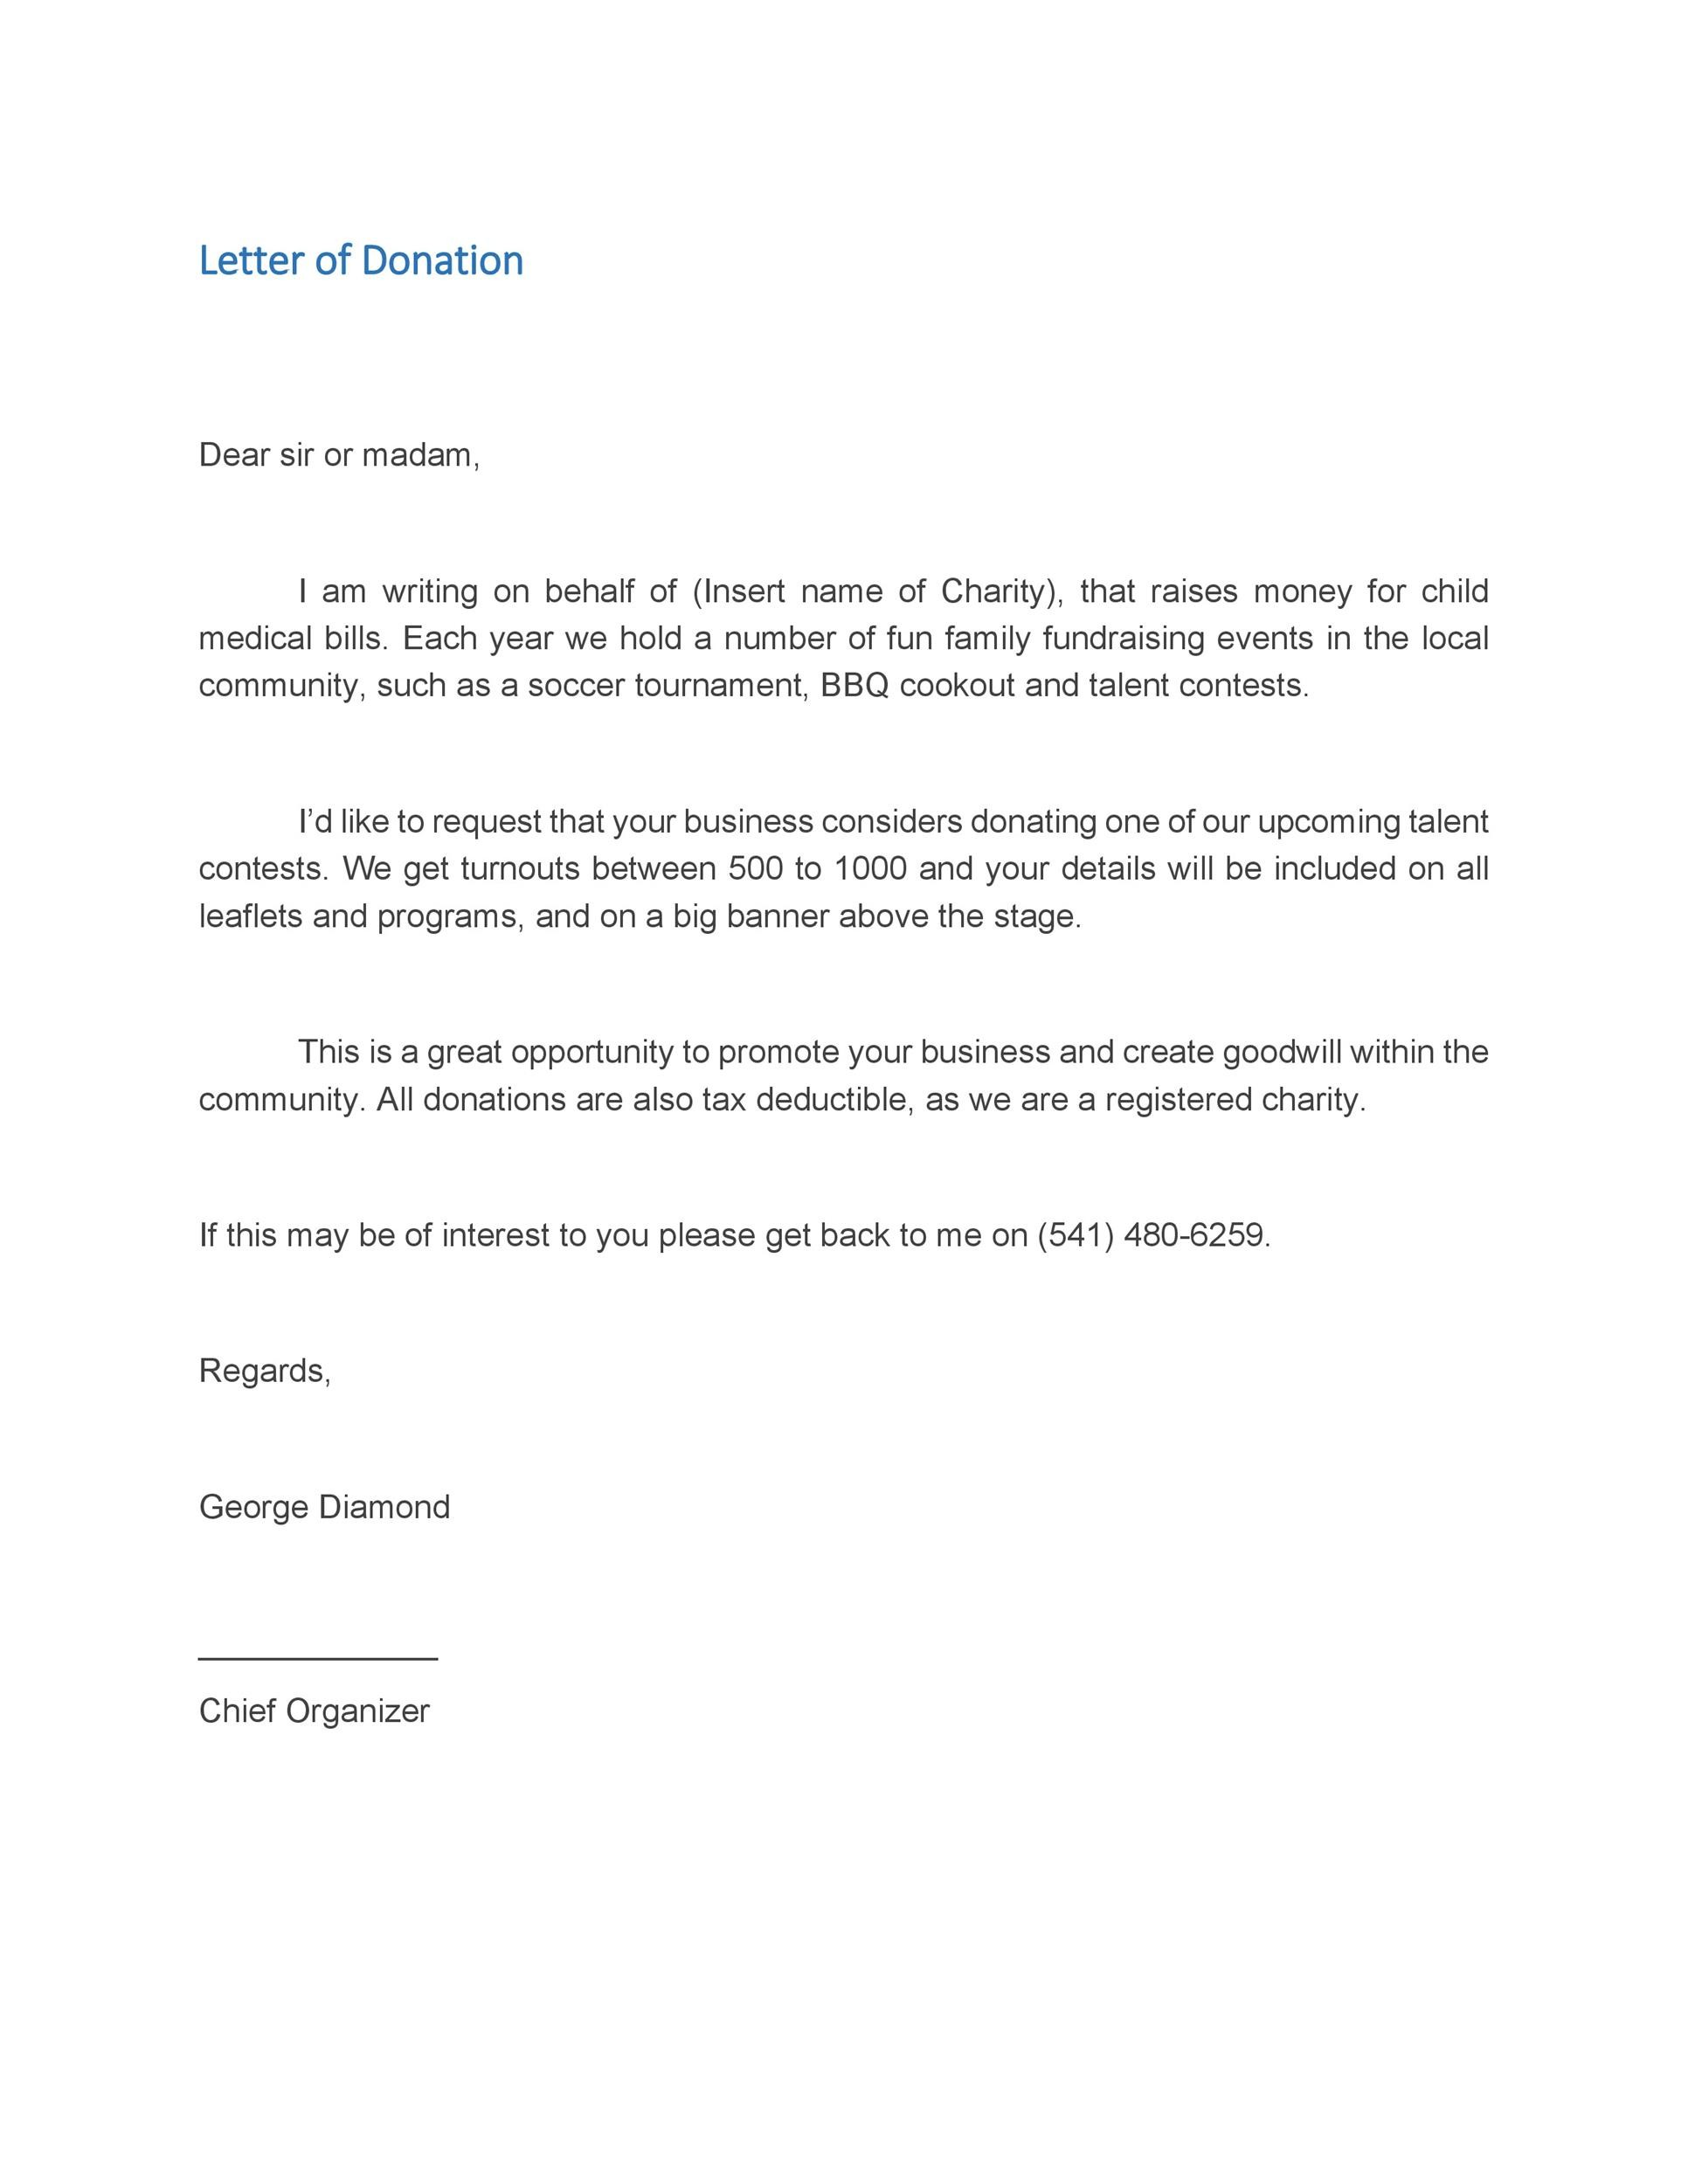 Sample Donation Request Letter To A Company - Template